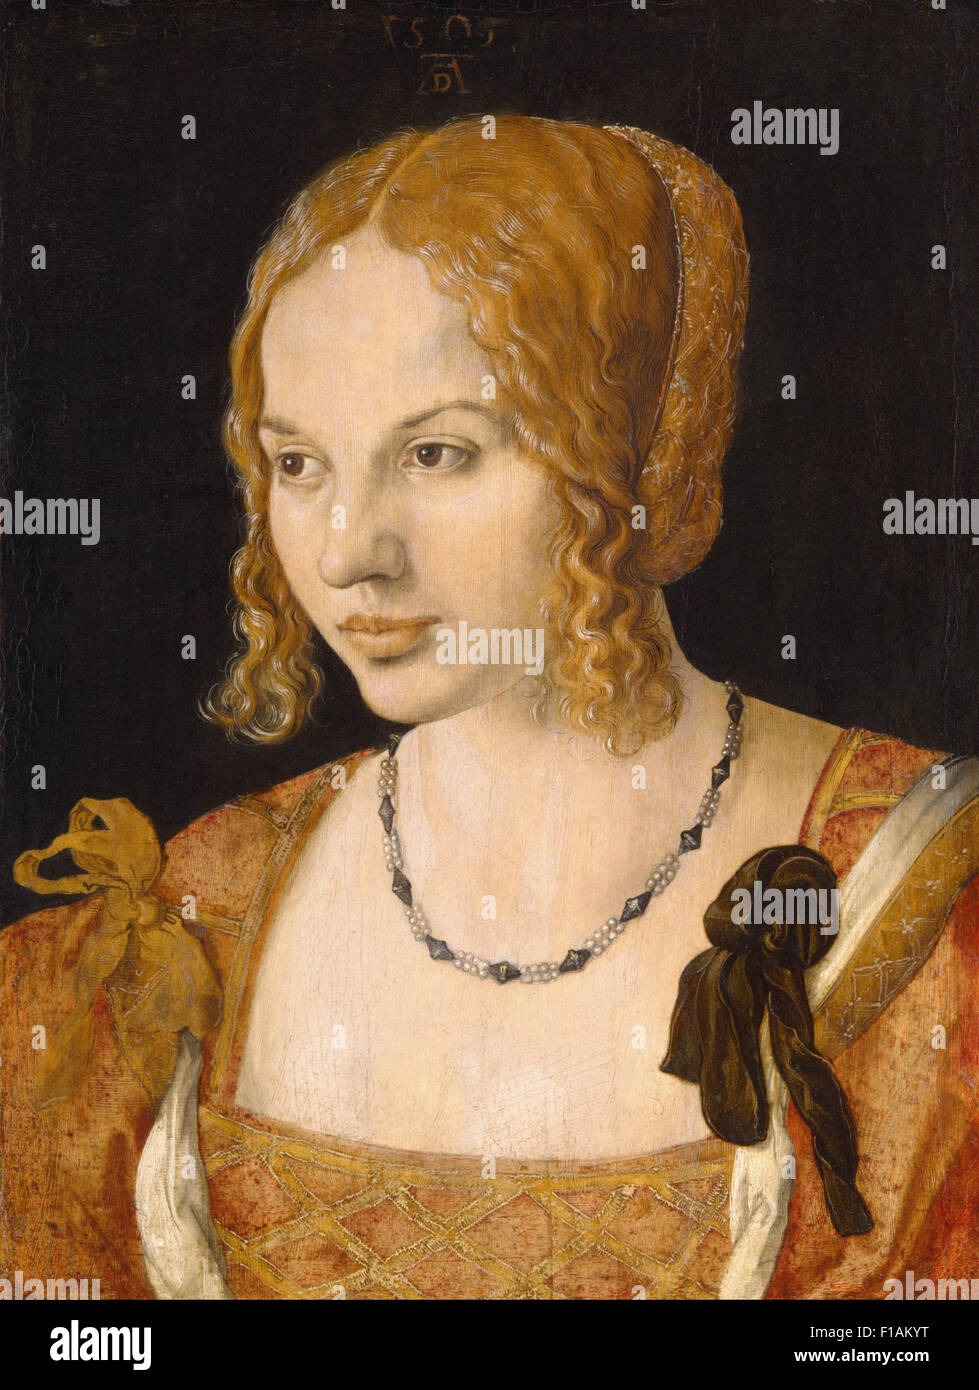 Albrecht Dürer - Portrait of a Young Venetian Woman - Stock Image